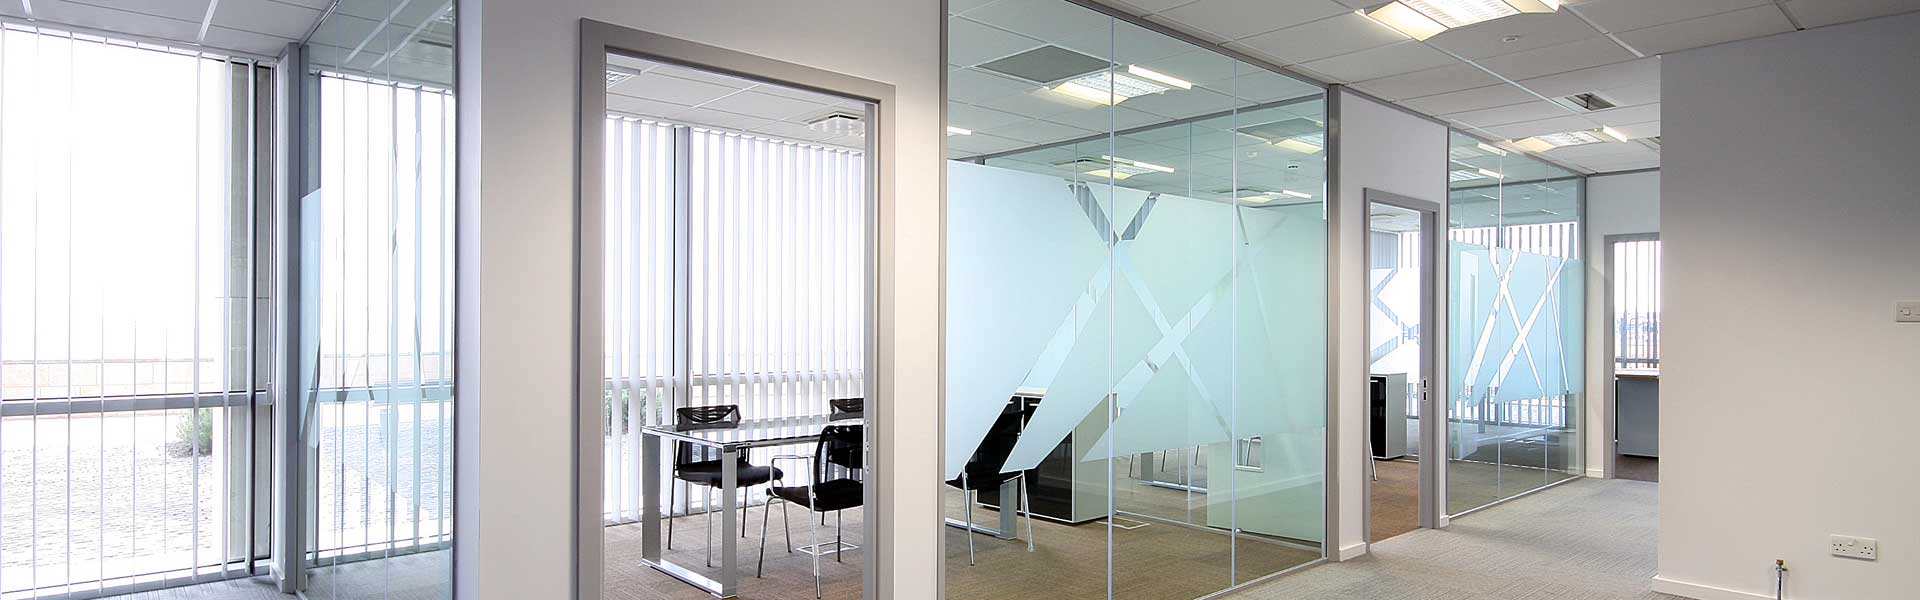 Interiors & Partitions in Glasgow